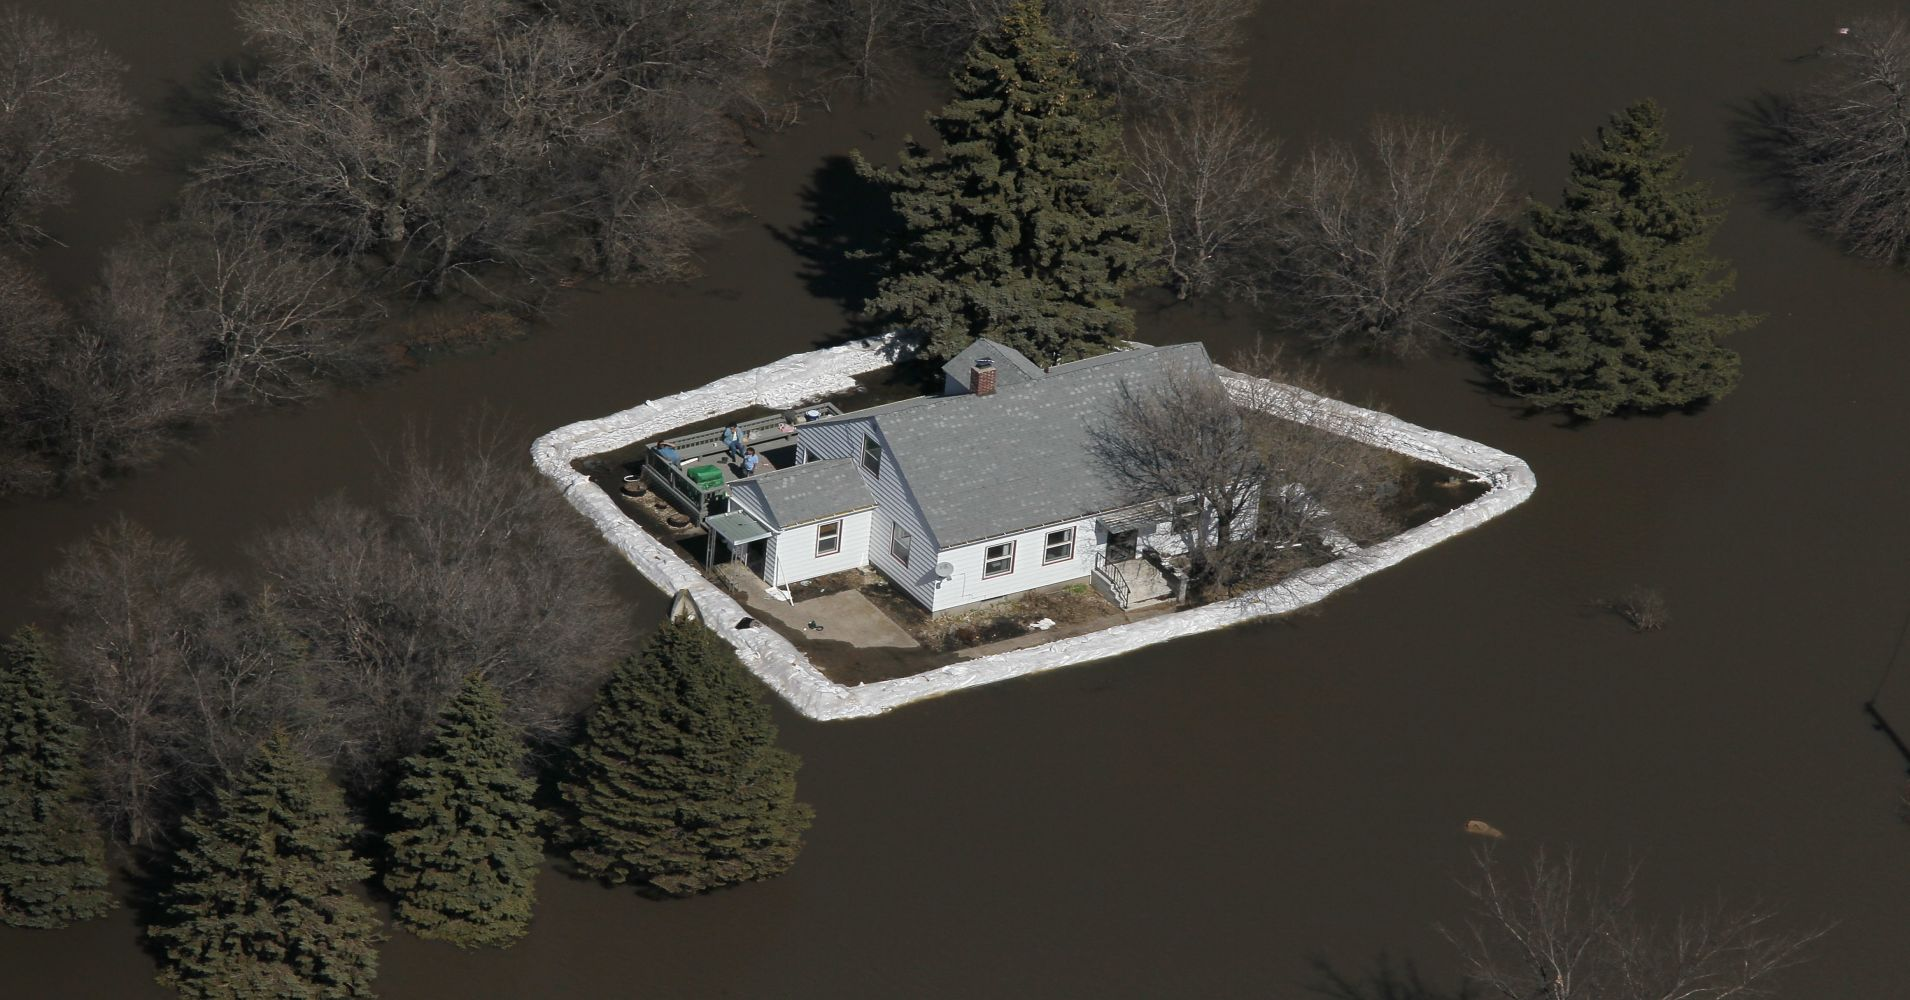 A house is surrounded by floodwater from the Red River on April 11, 2011 near Fargo, North Dakota. Although the Red River crested in Fargo on Saturday at 38.75 feet, the fourth-highest flood on record, areas north of the city are still experiencing near-record flooding.